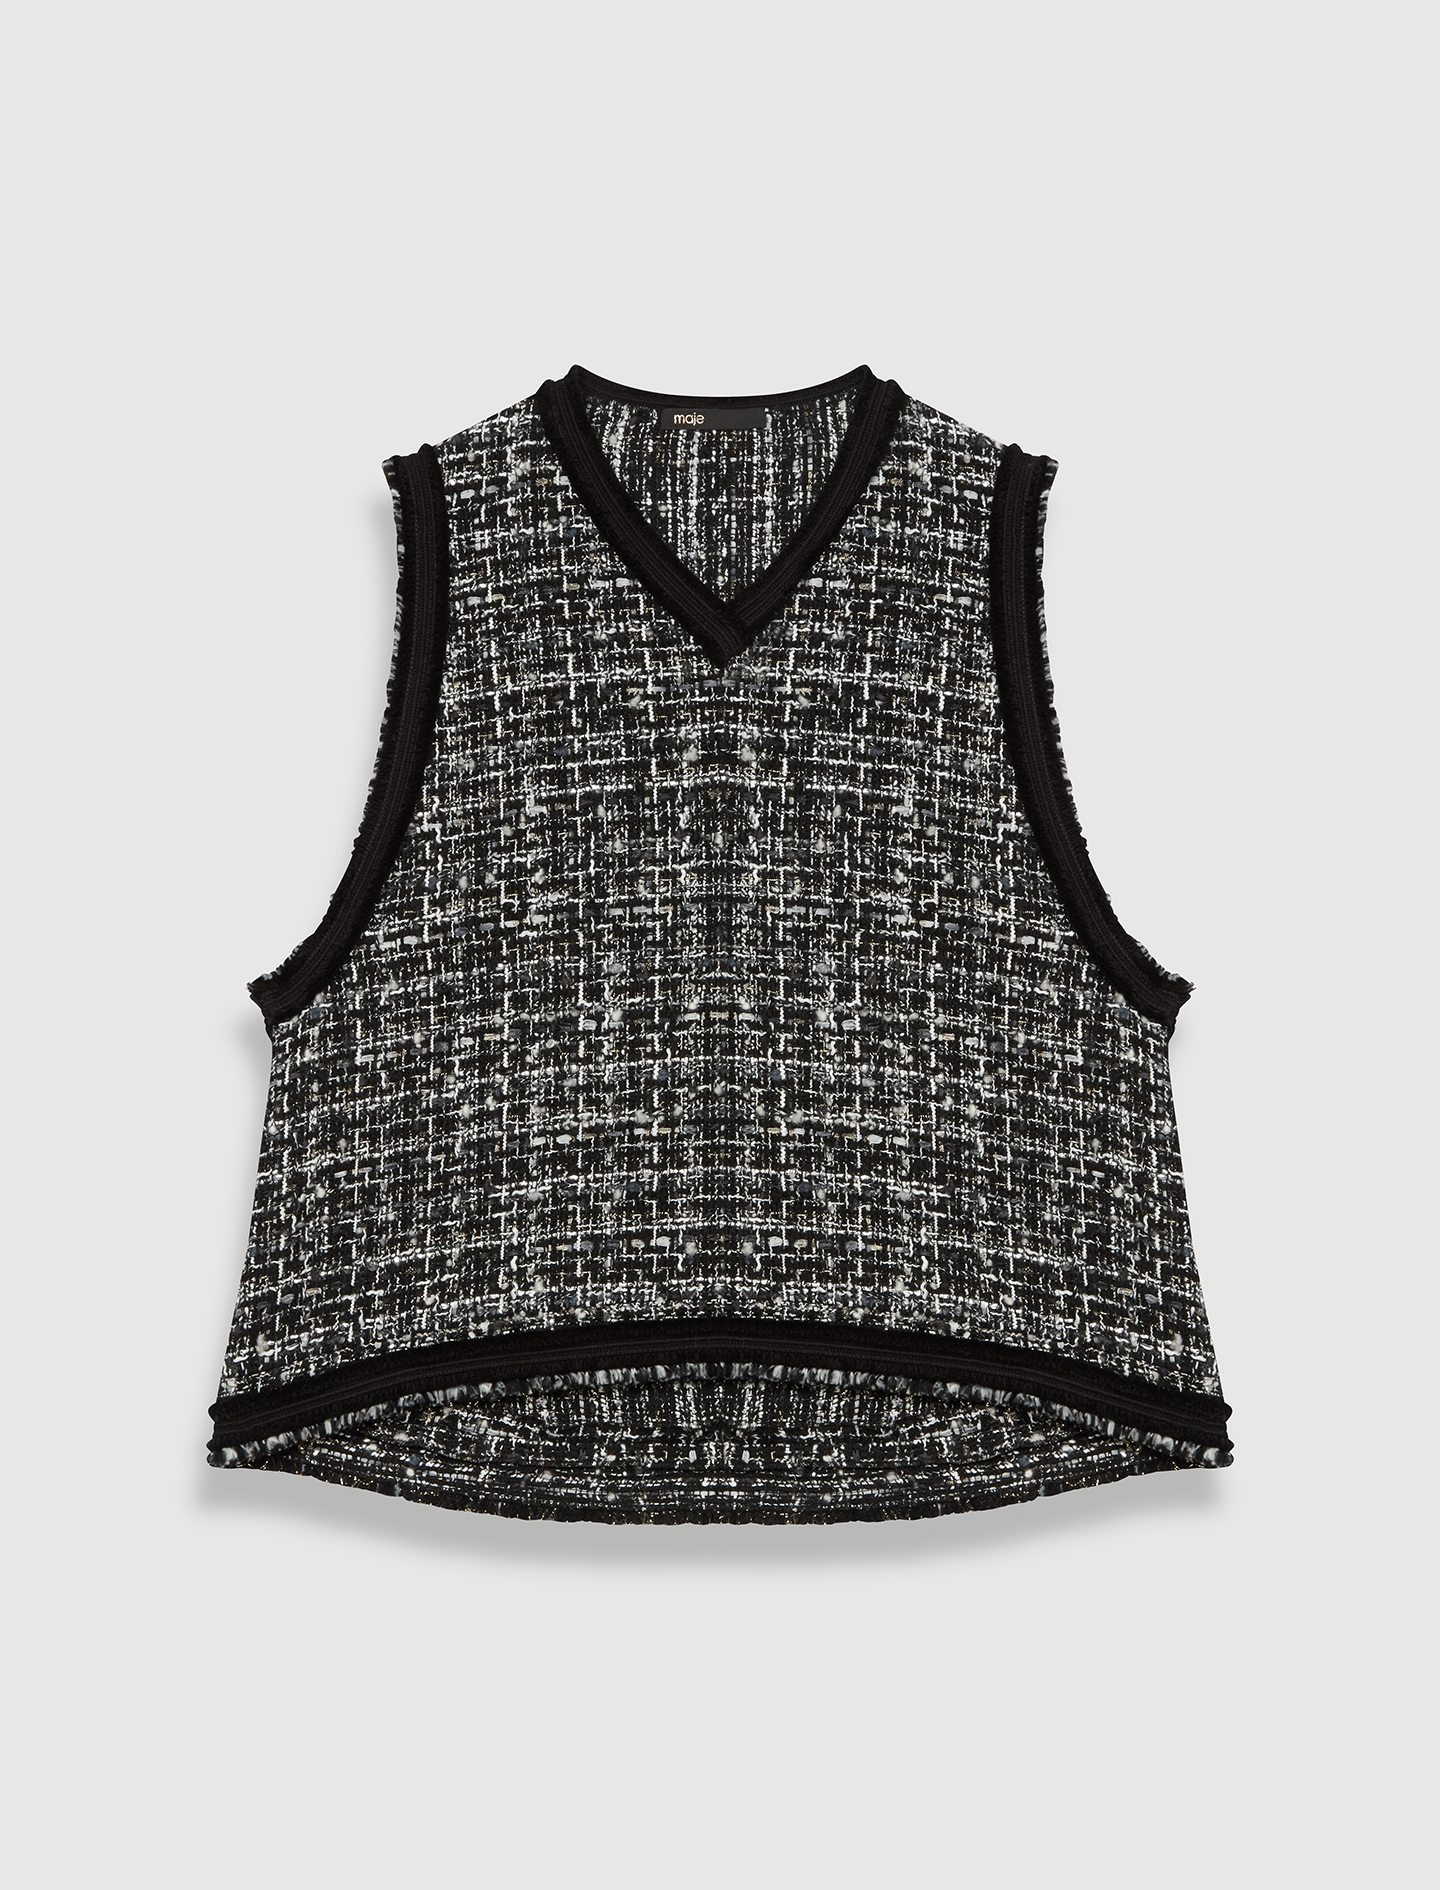 Tweed-style top, contrast fringed trims - Multiclr